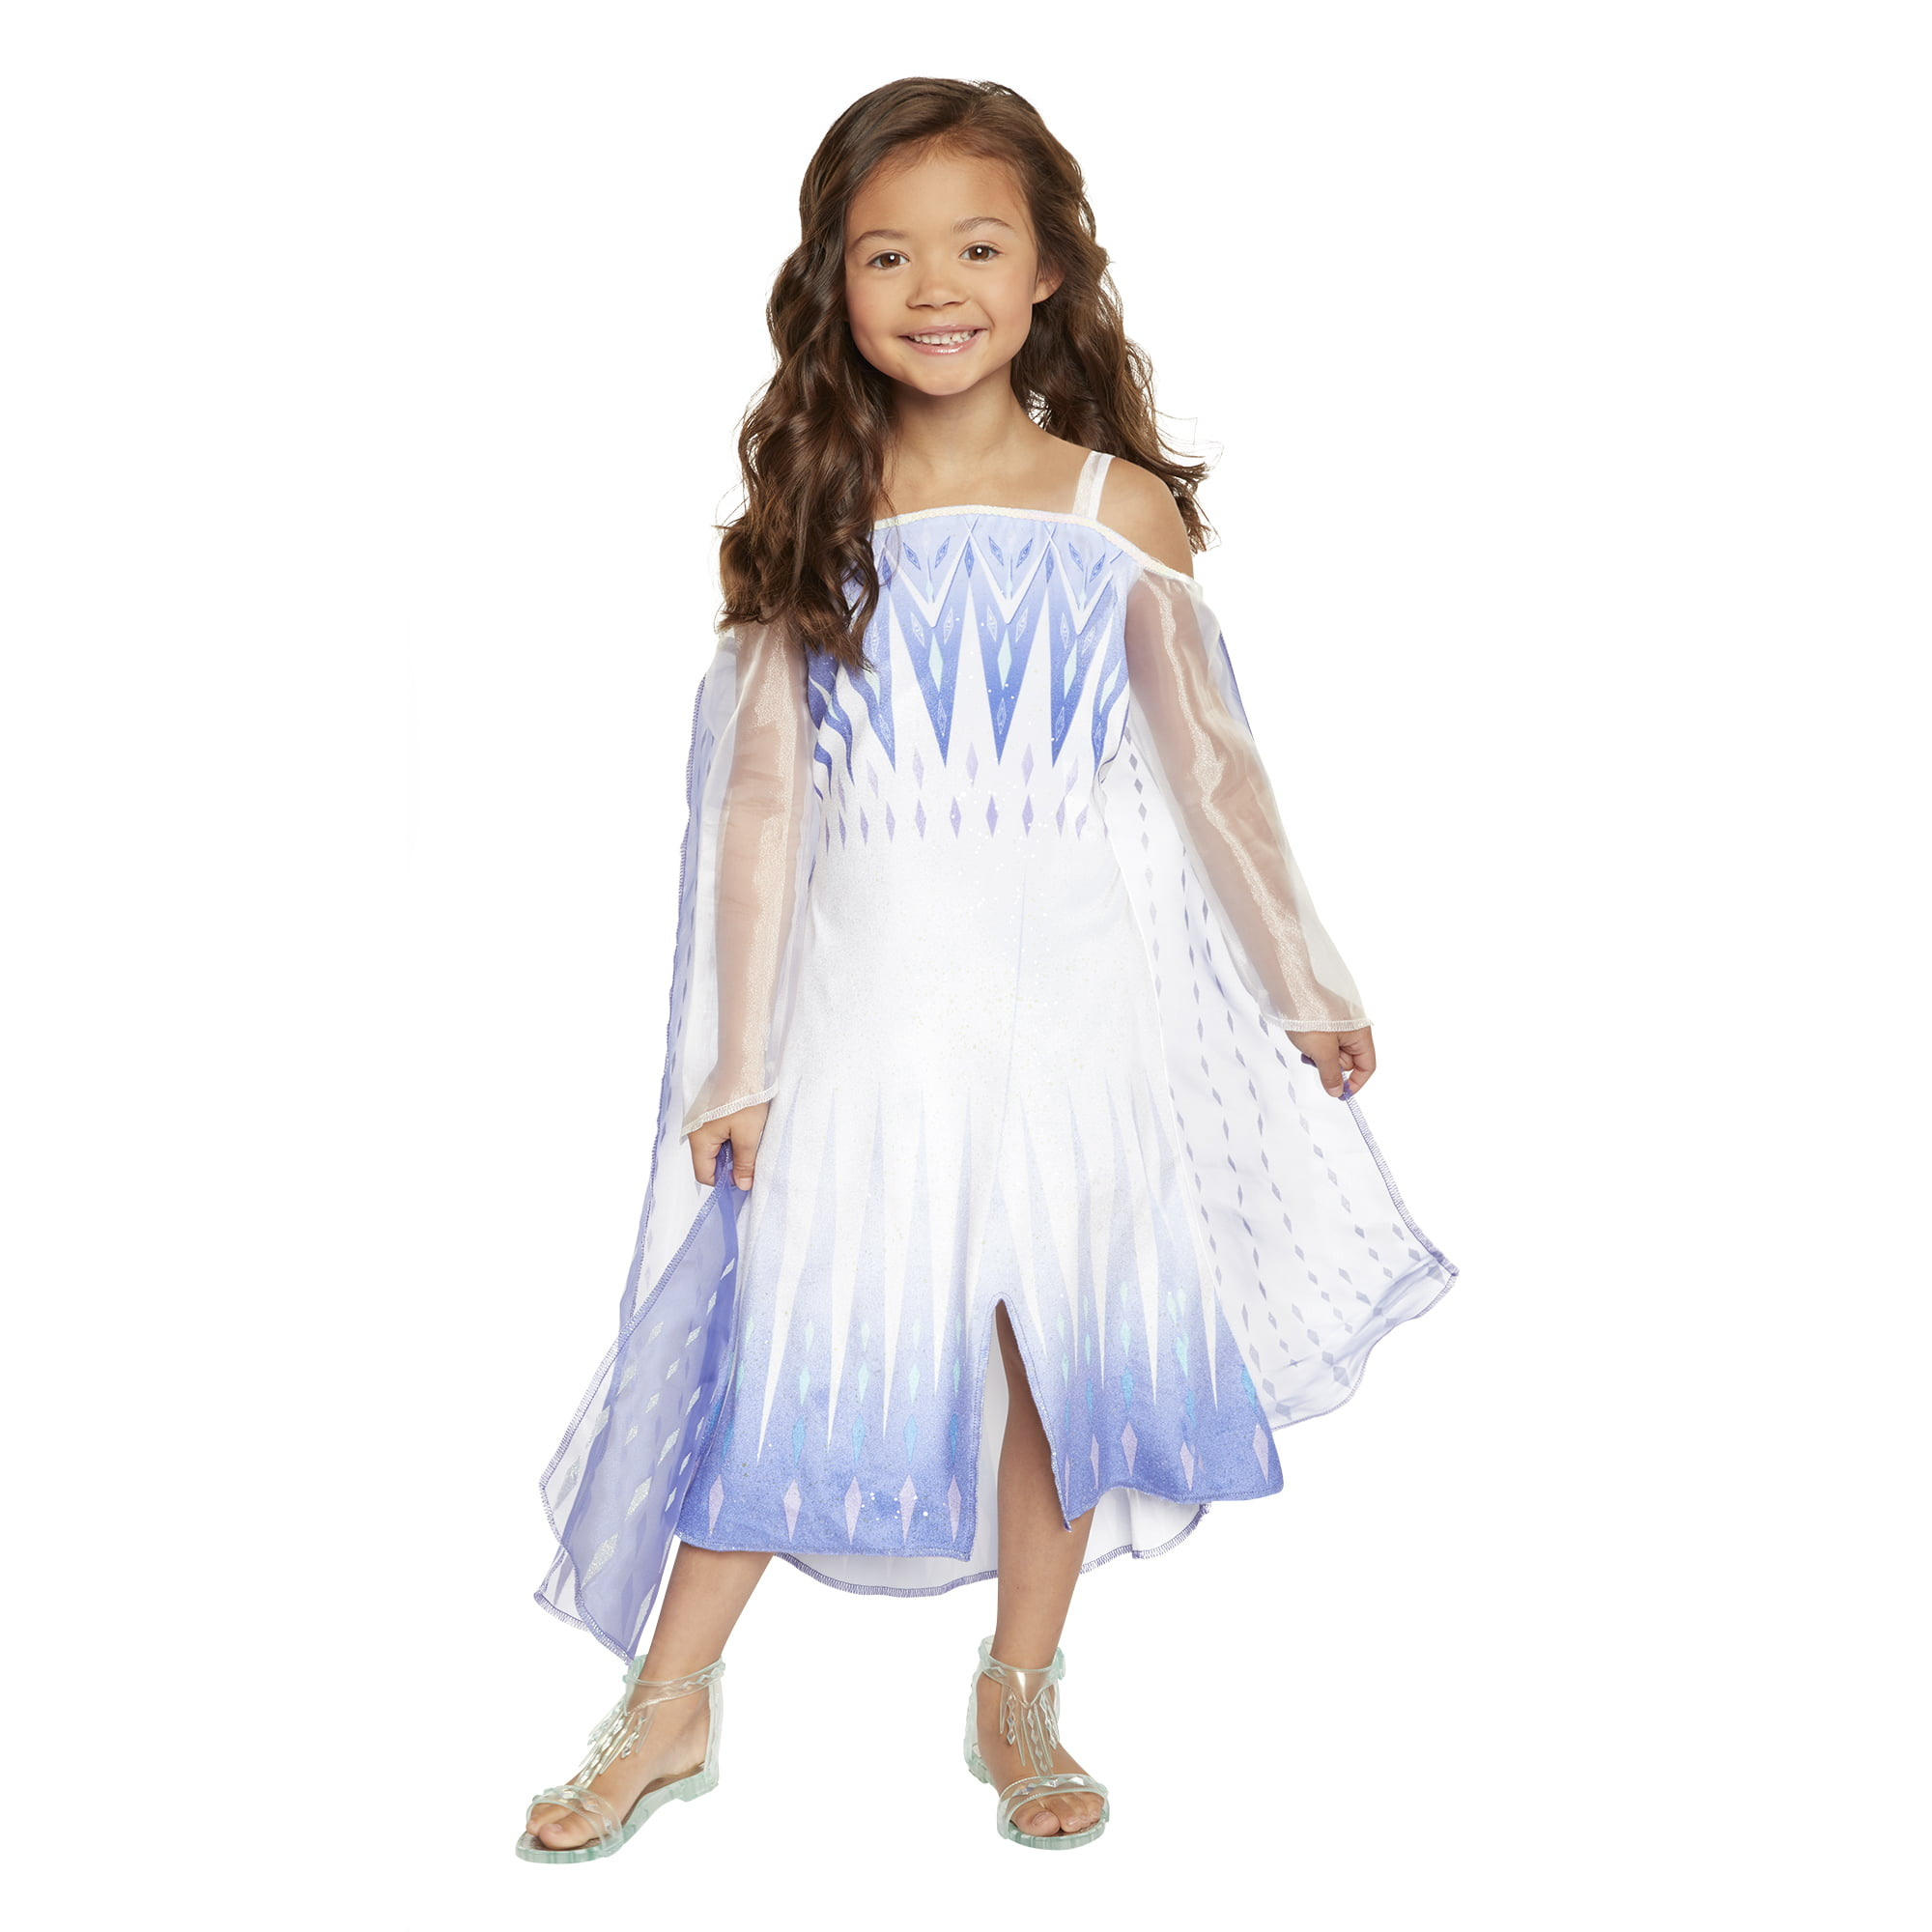 Kids Size Girls White Snow Queen Costume DRESS CAPE TIARA